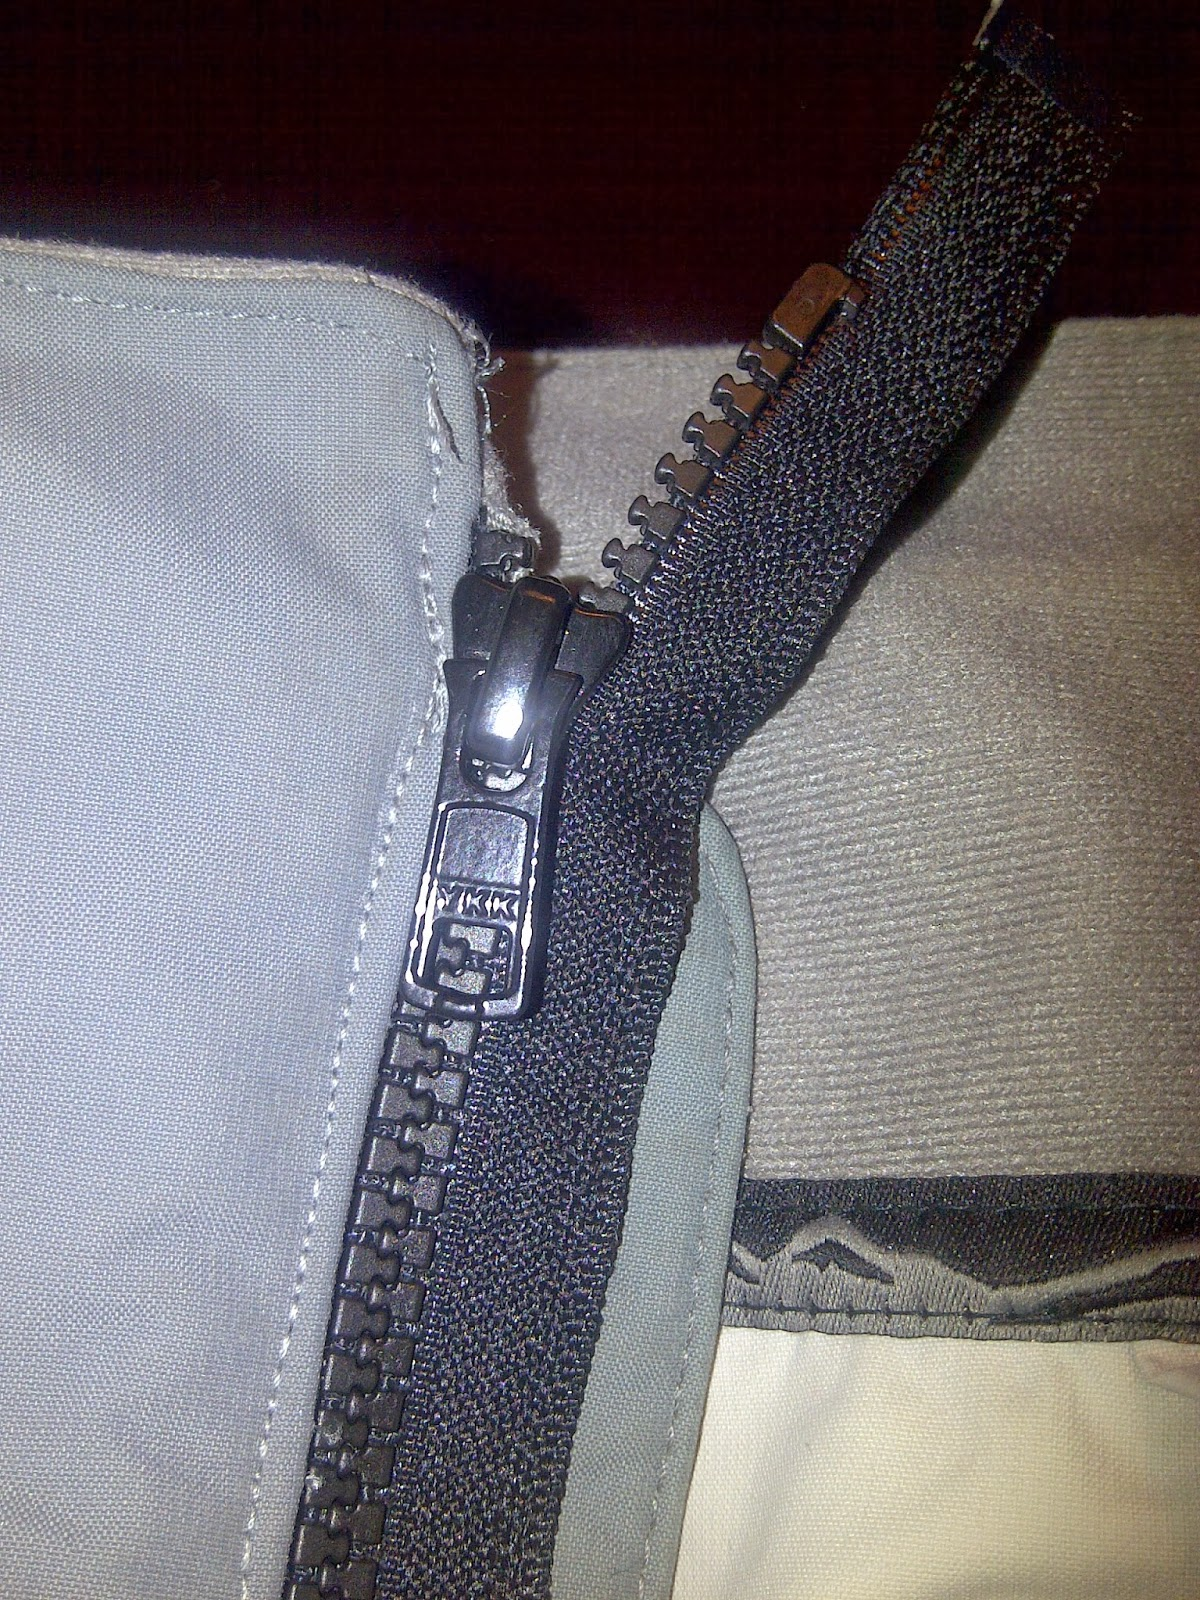 how to fix a zipper on one side